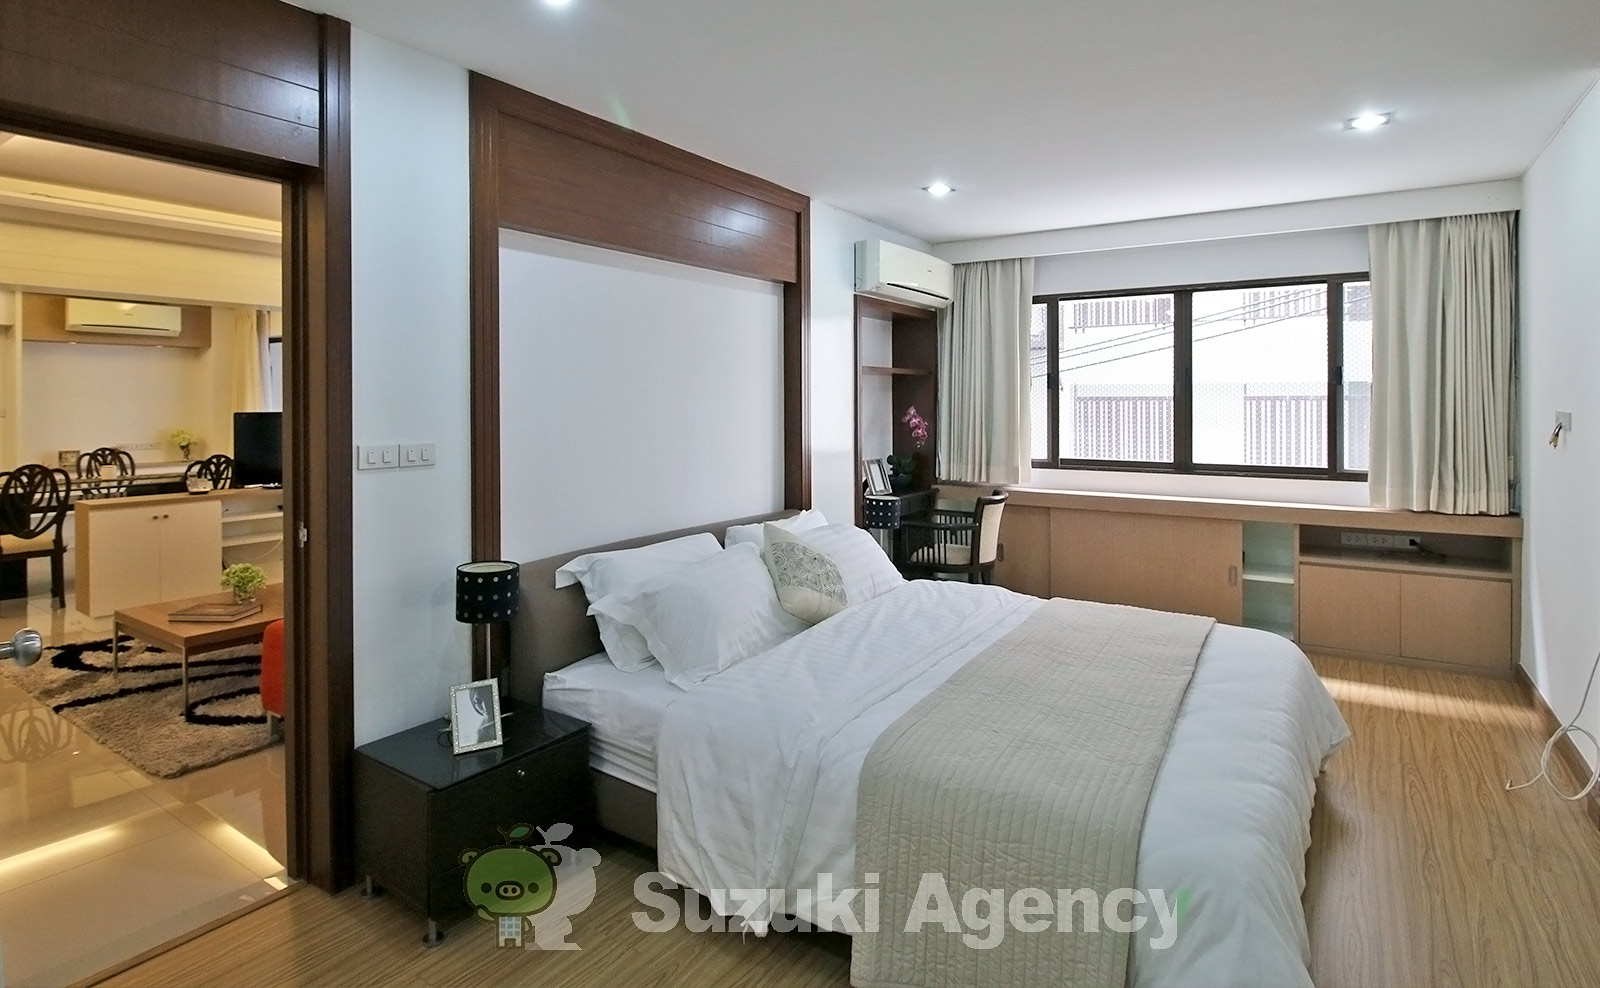 Yada Residential:2Bed Room Photos No.7